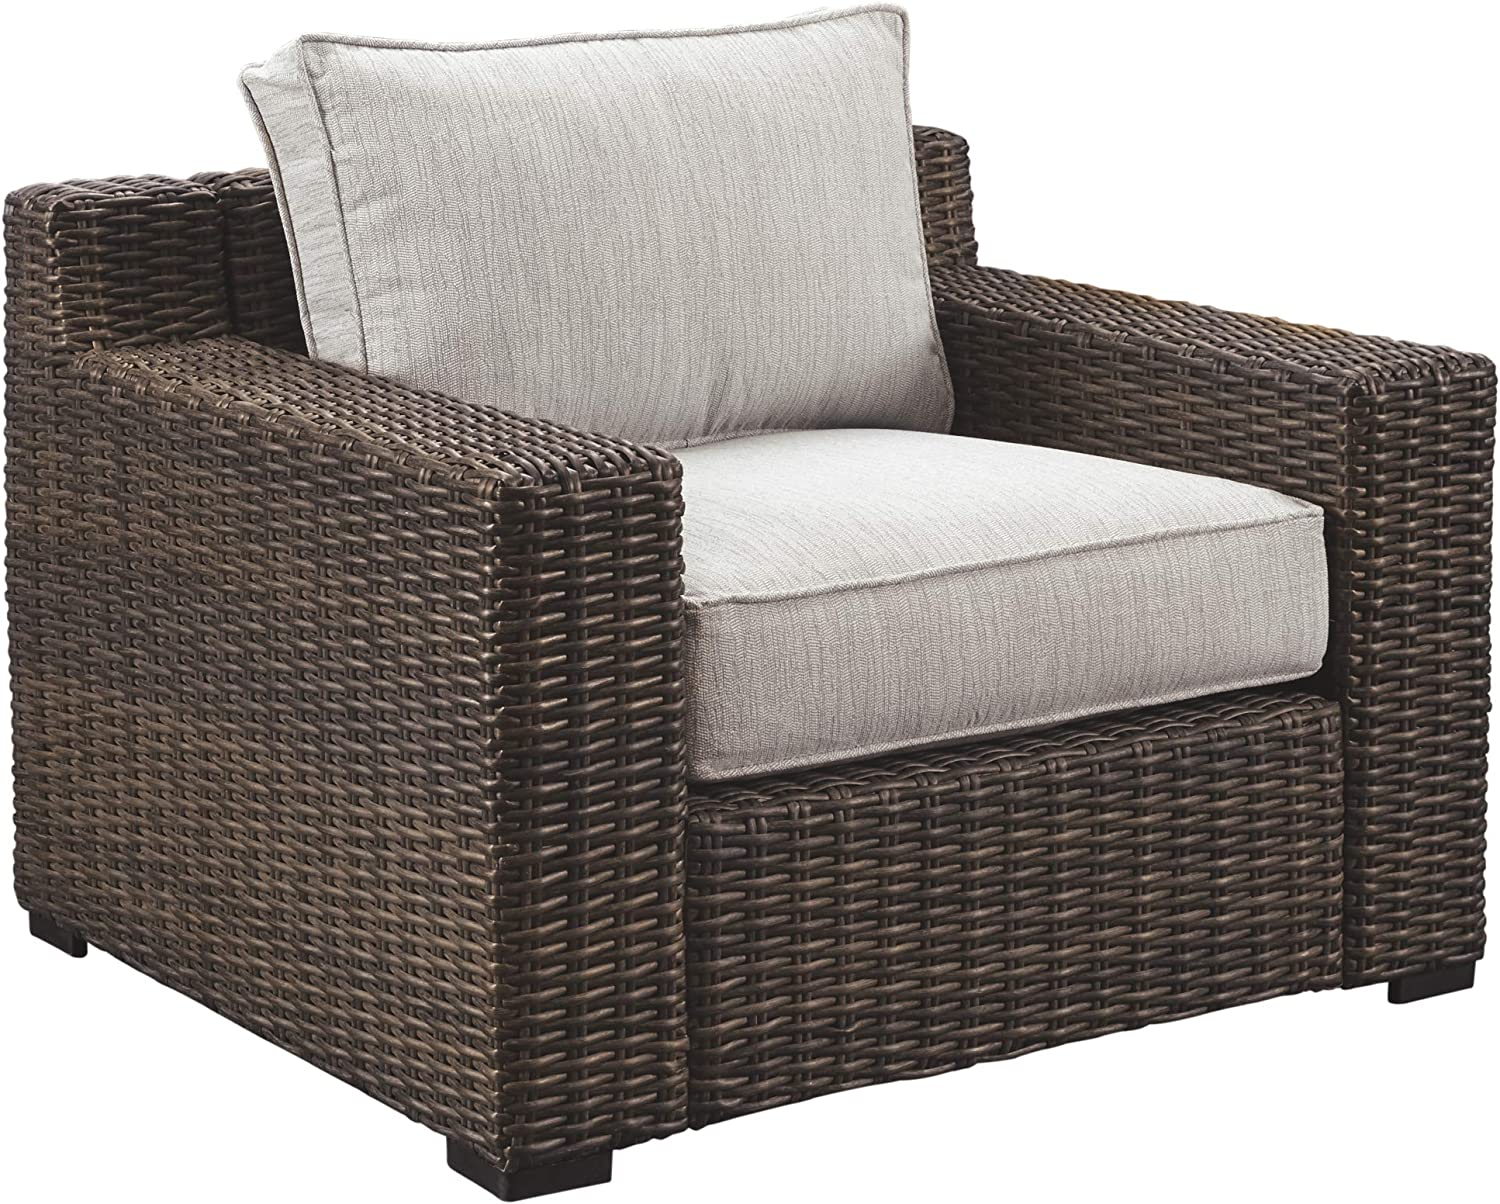 Ashley Furniture Signature Design – Alta Grande Outdoor Lounge Chair with Cushion – Beige Brown